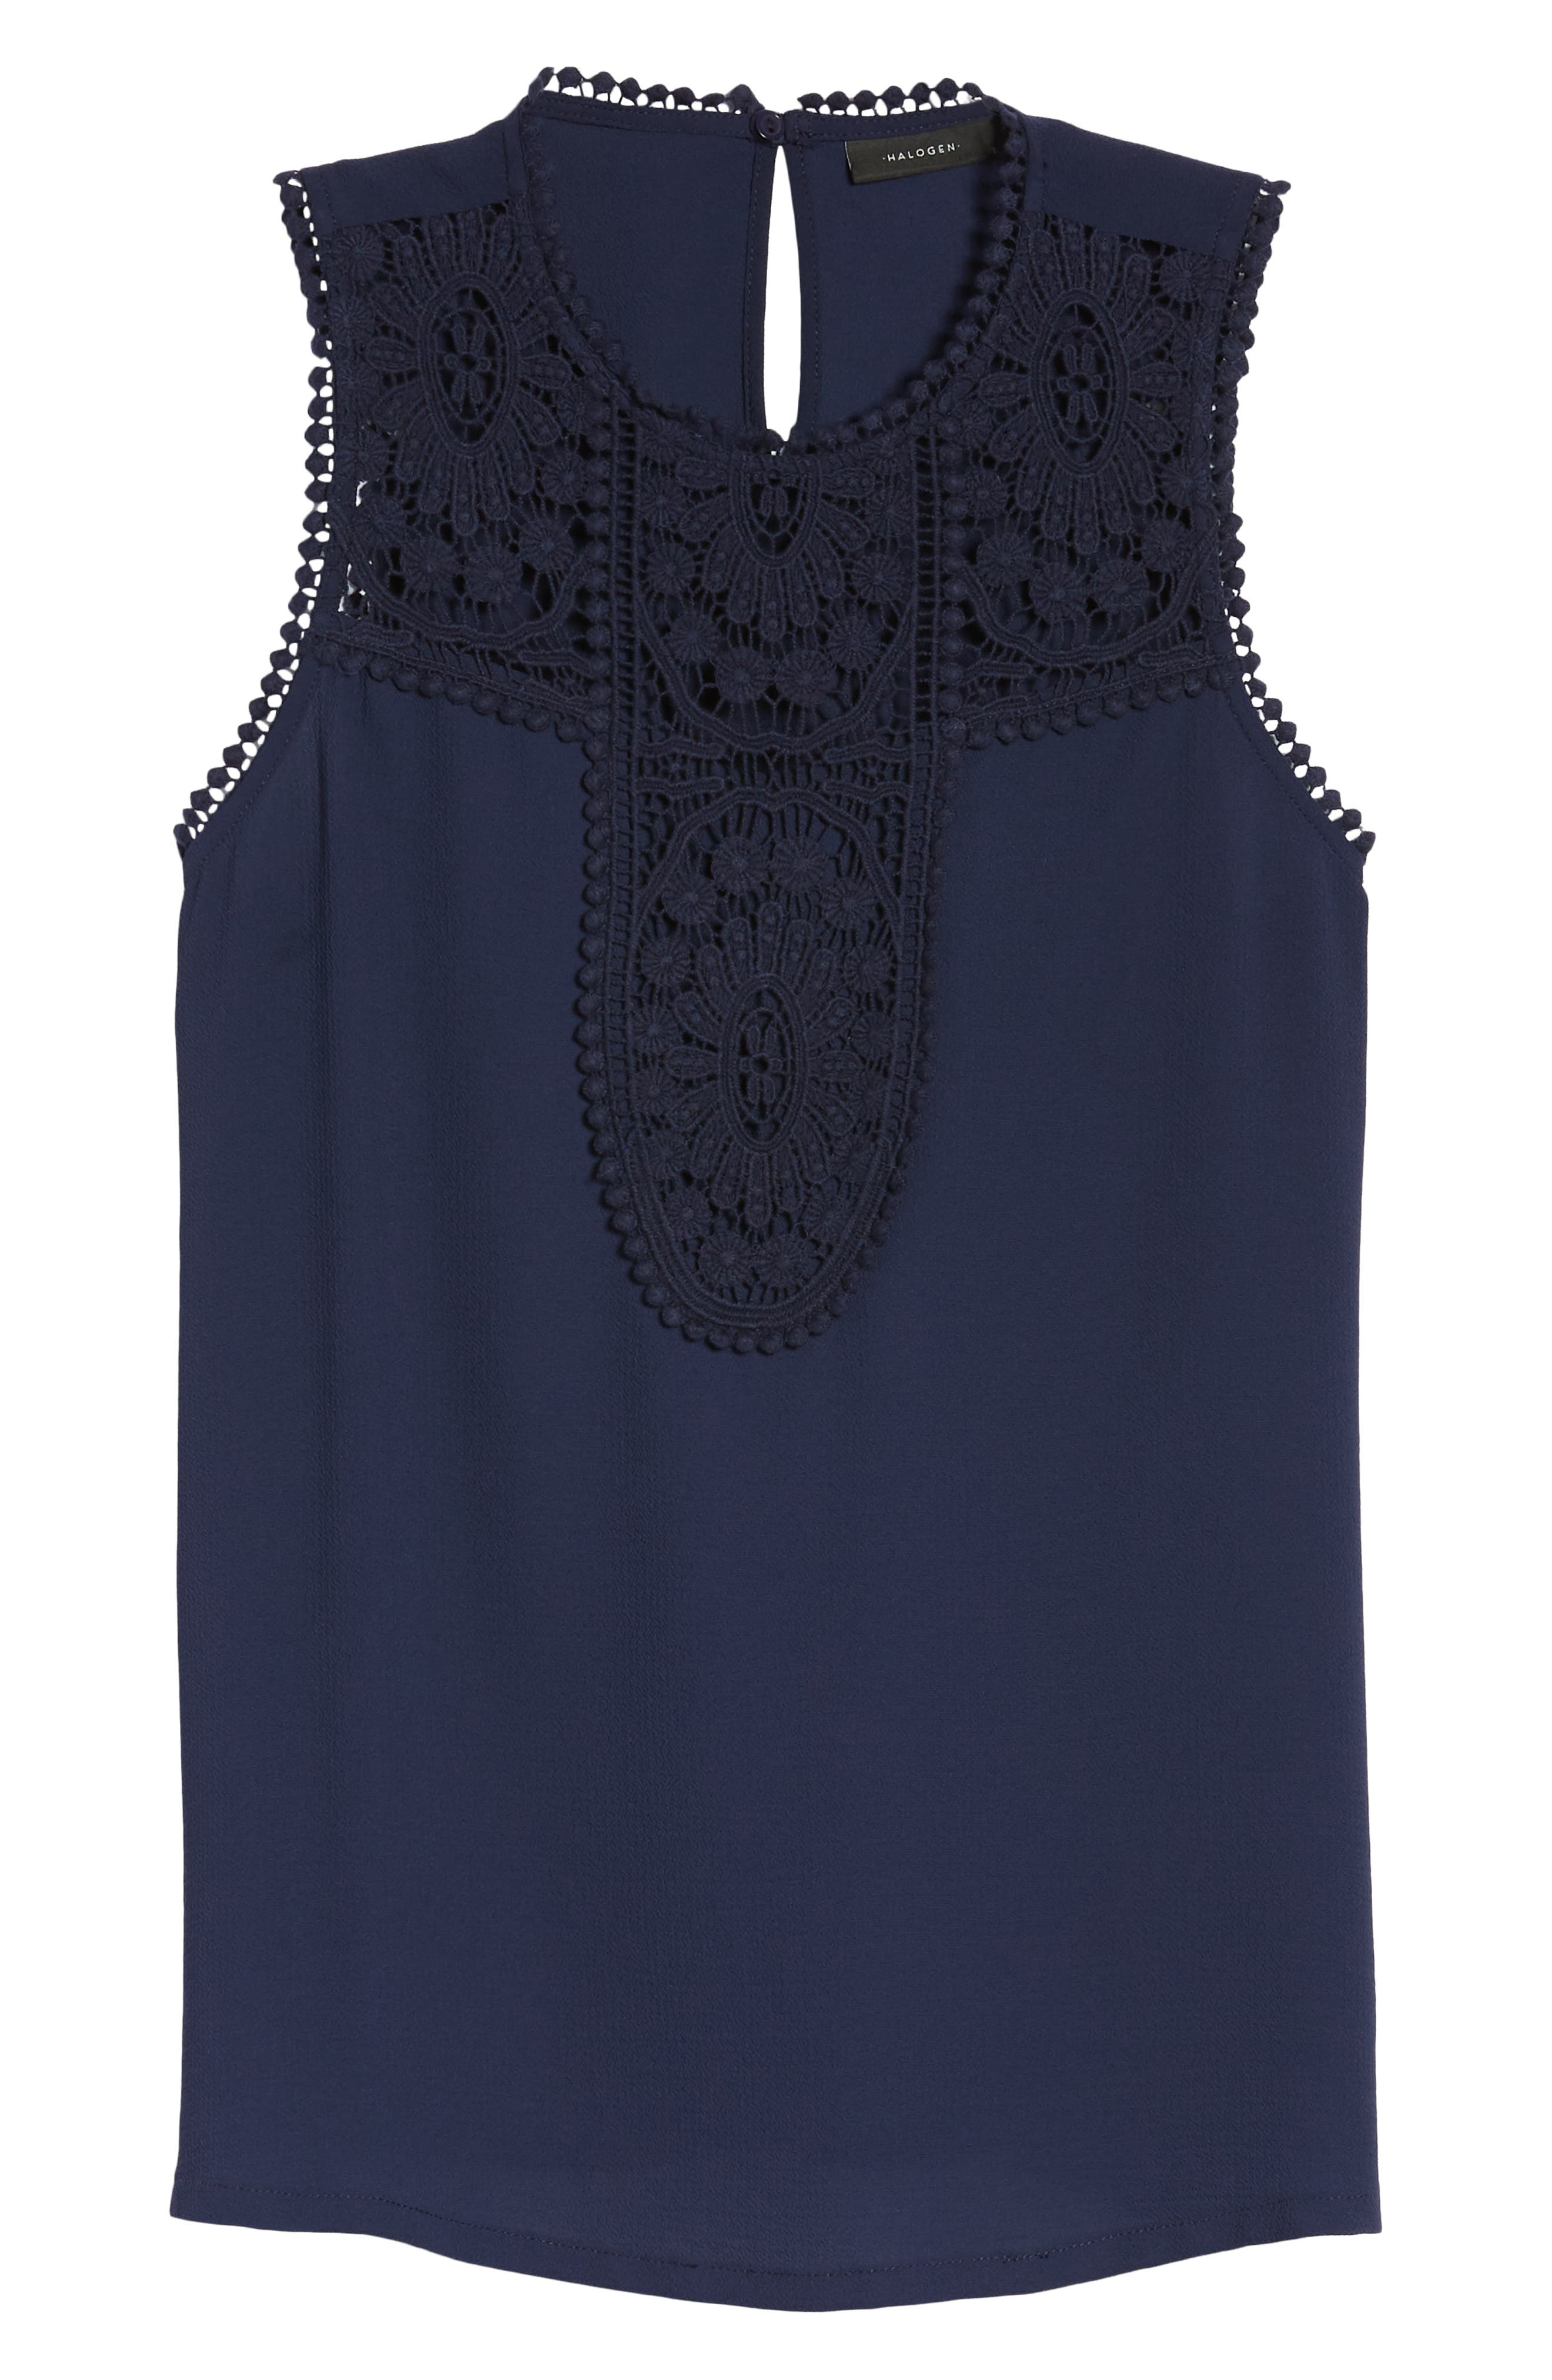 Lace & Crepe Top,                             Alternate thumbnail 7, color,                             NAVY PEACOAT